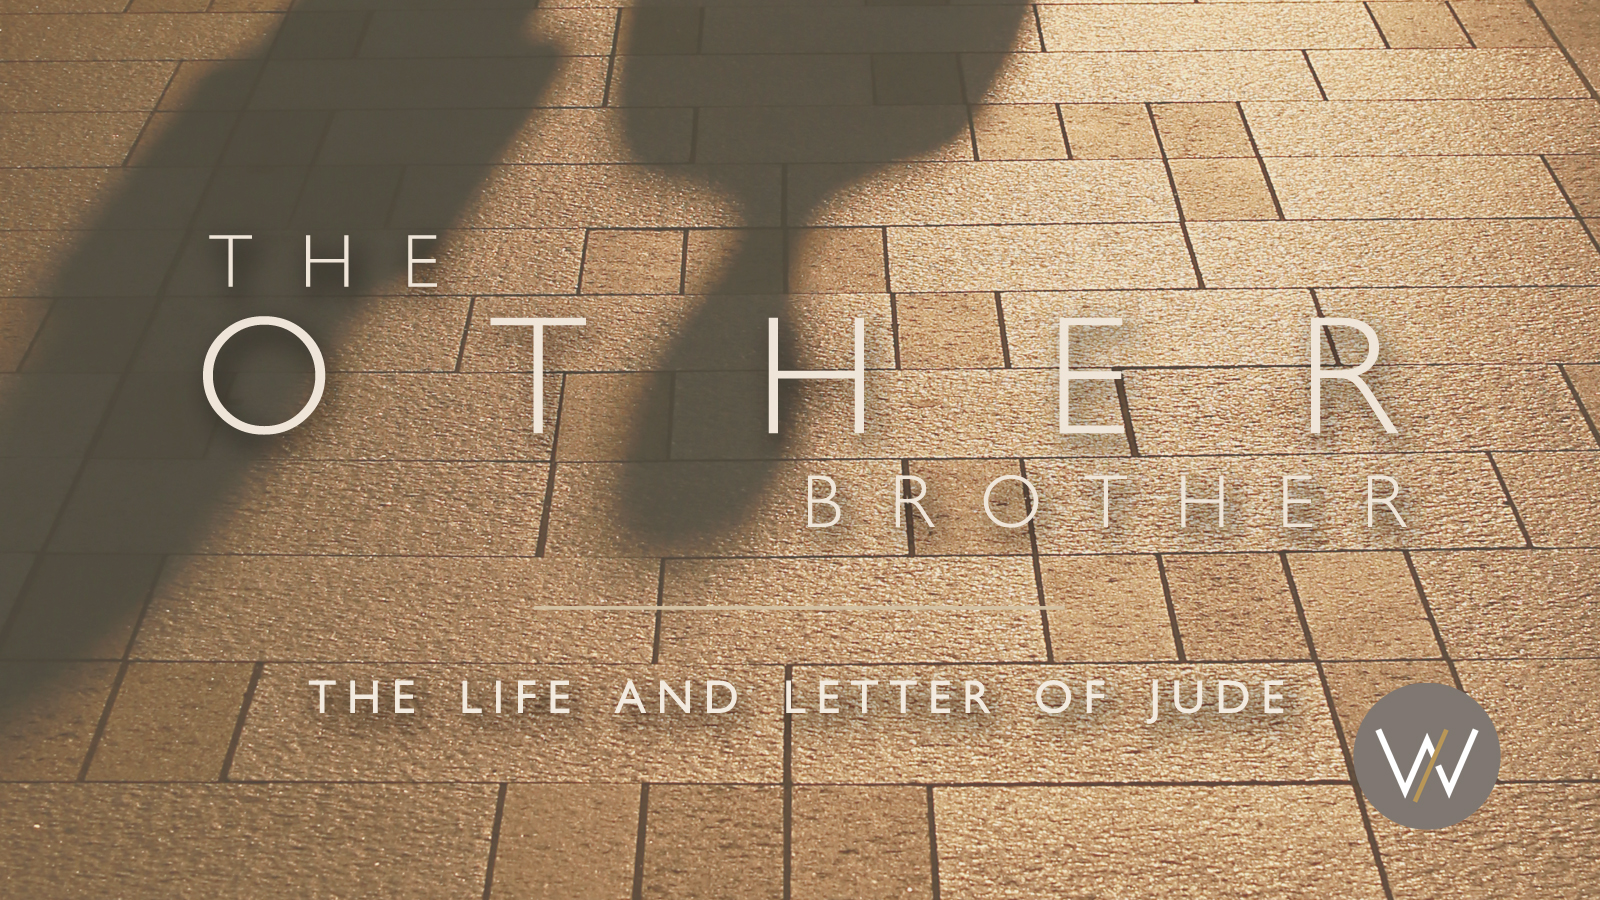 Other Brother 16 x9 .jpg